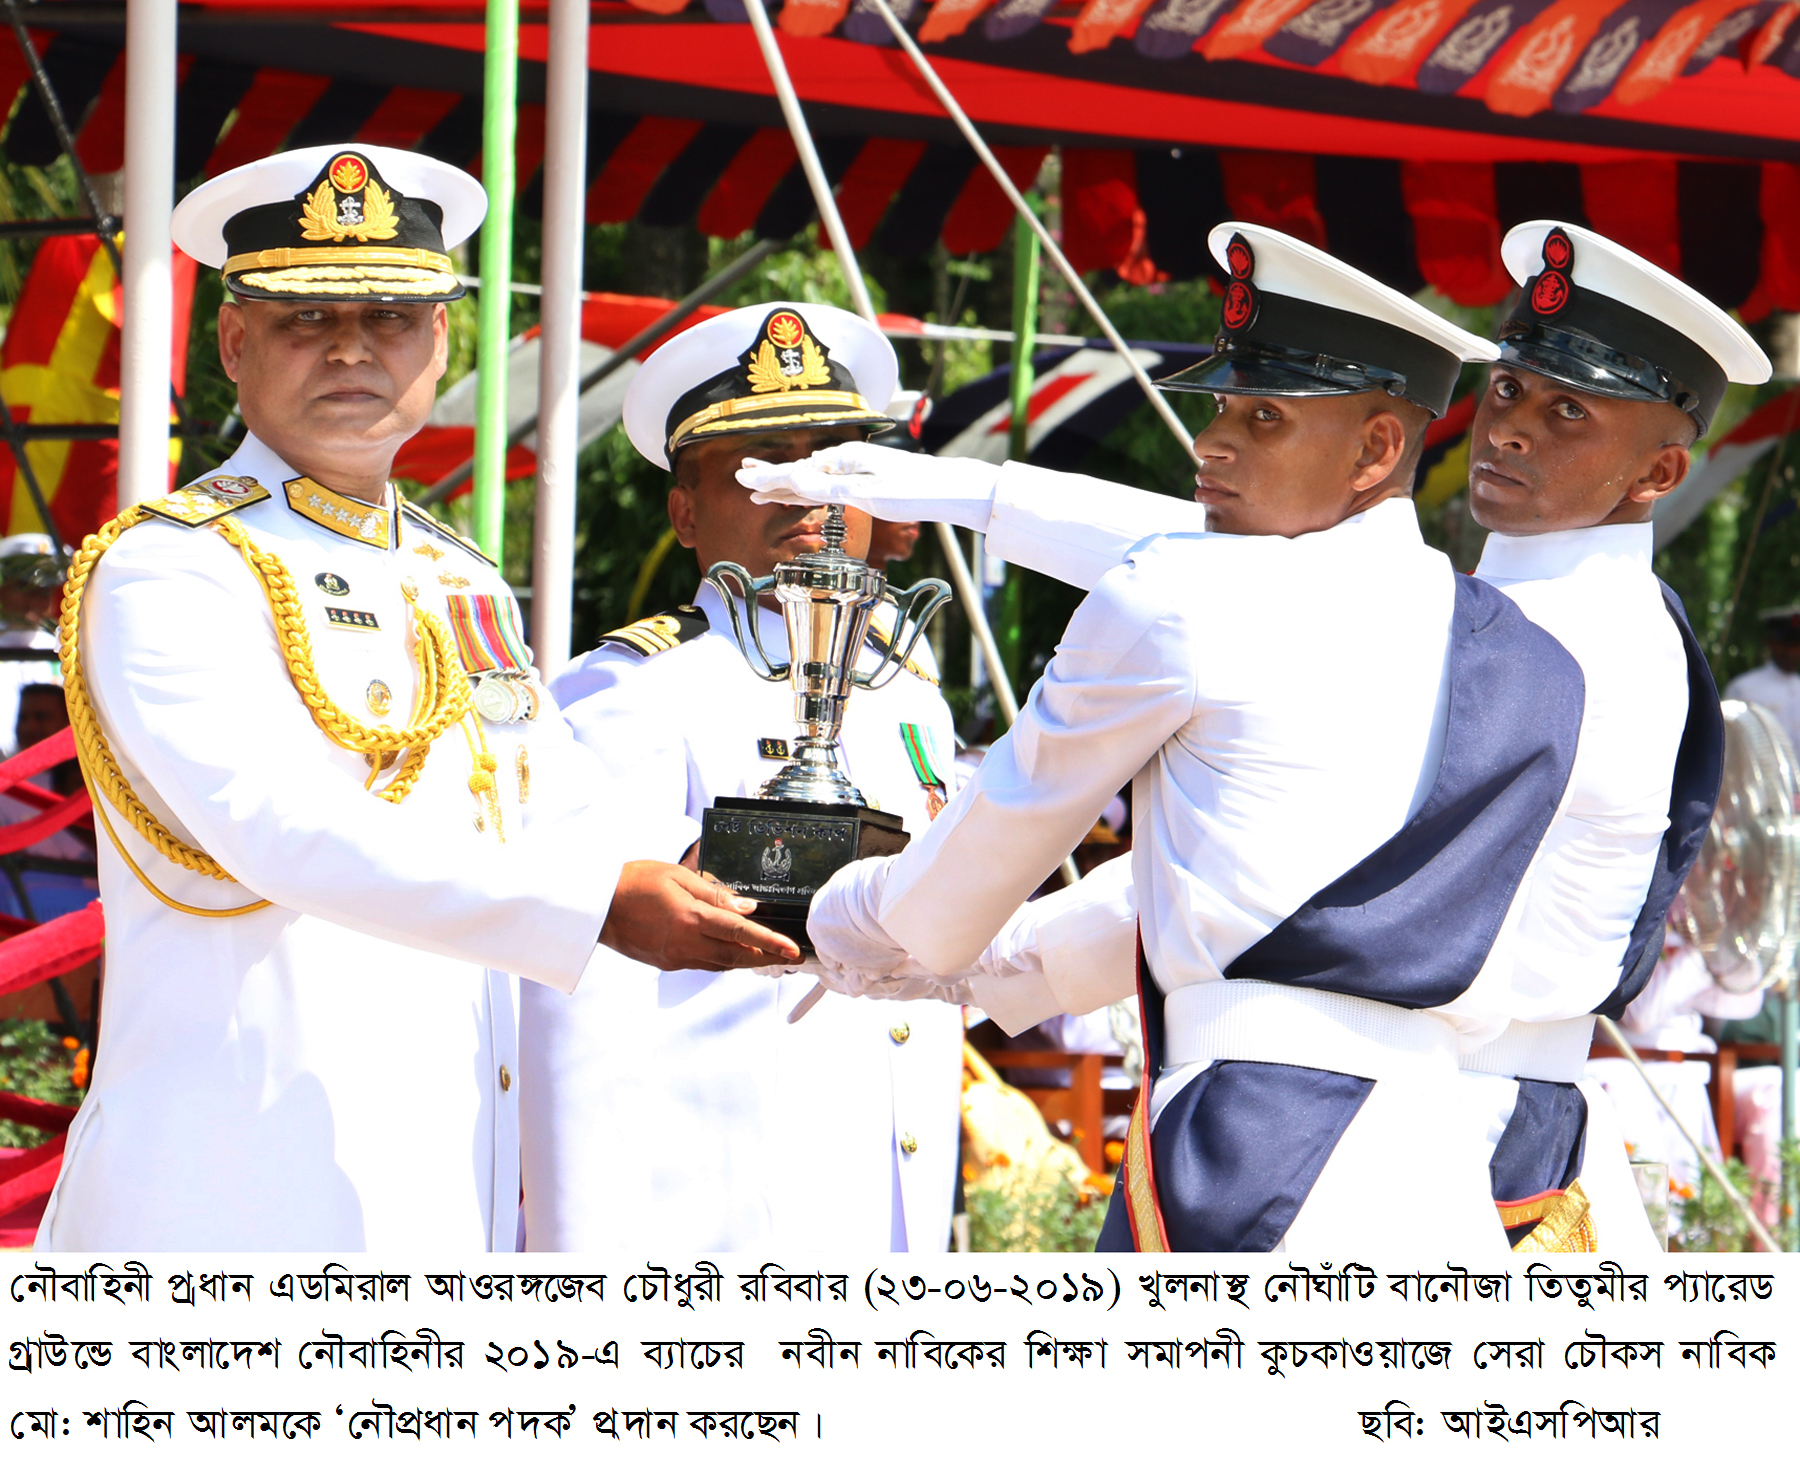 Attestation Parade of 773 New Sailors of BD Navy-2019-A Batch Held at BNS Titumeer Khulna